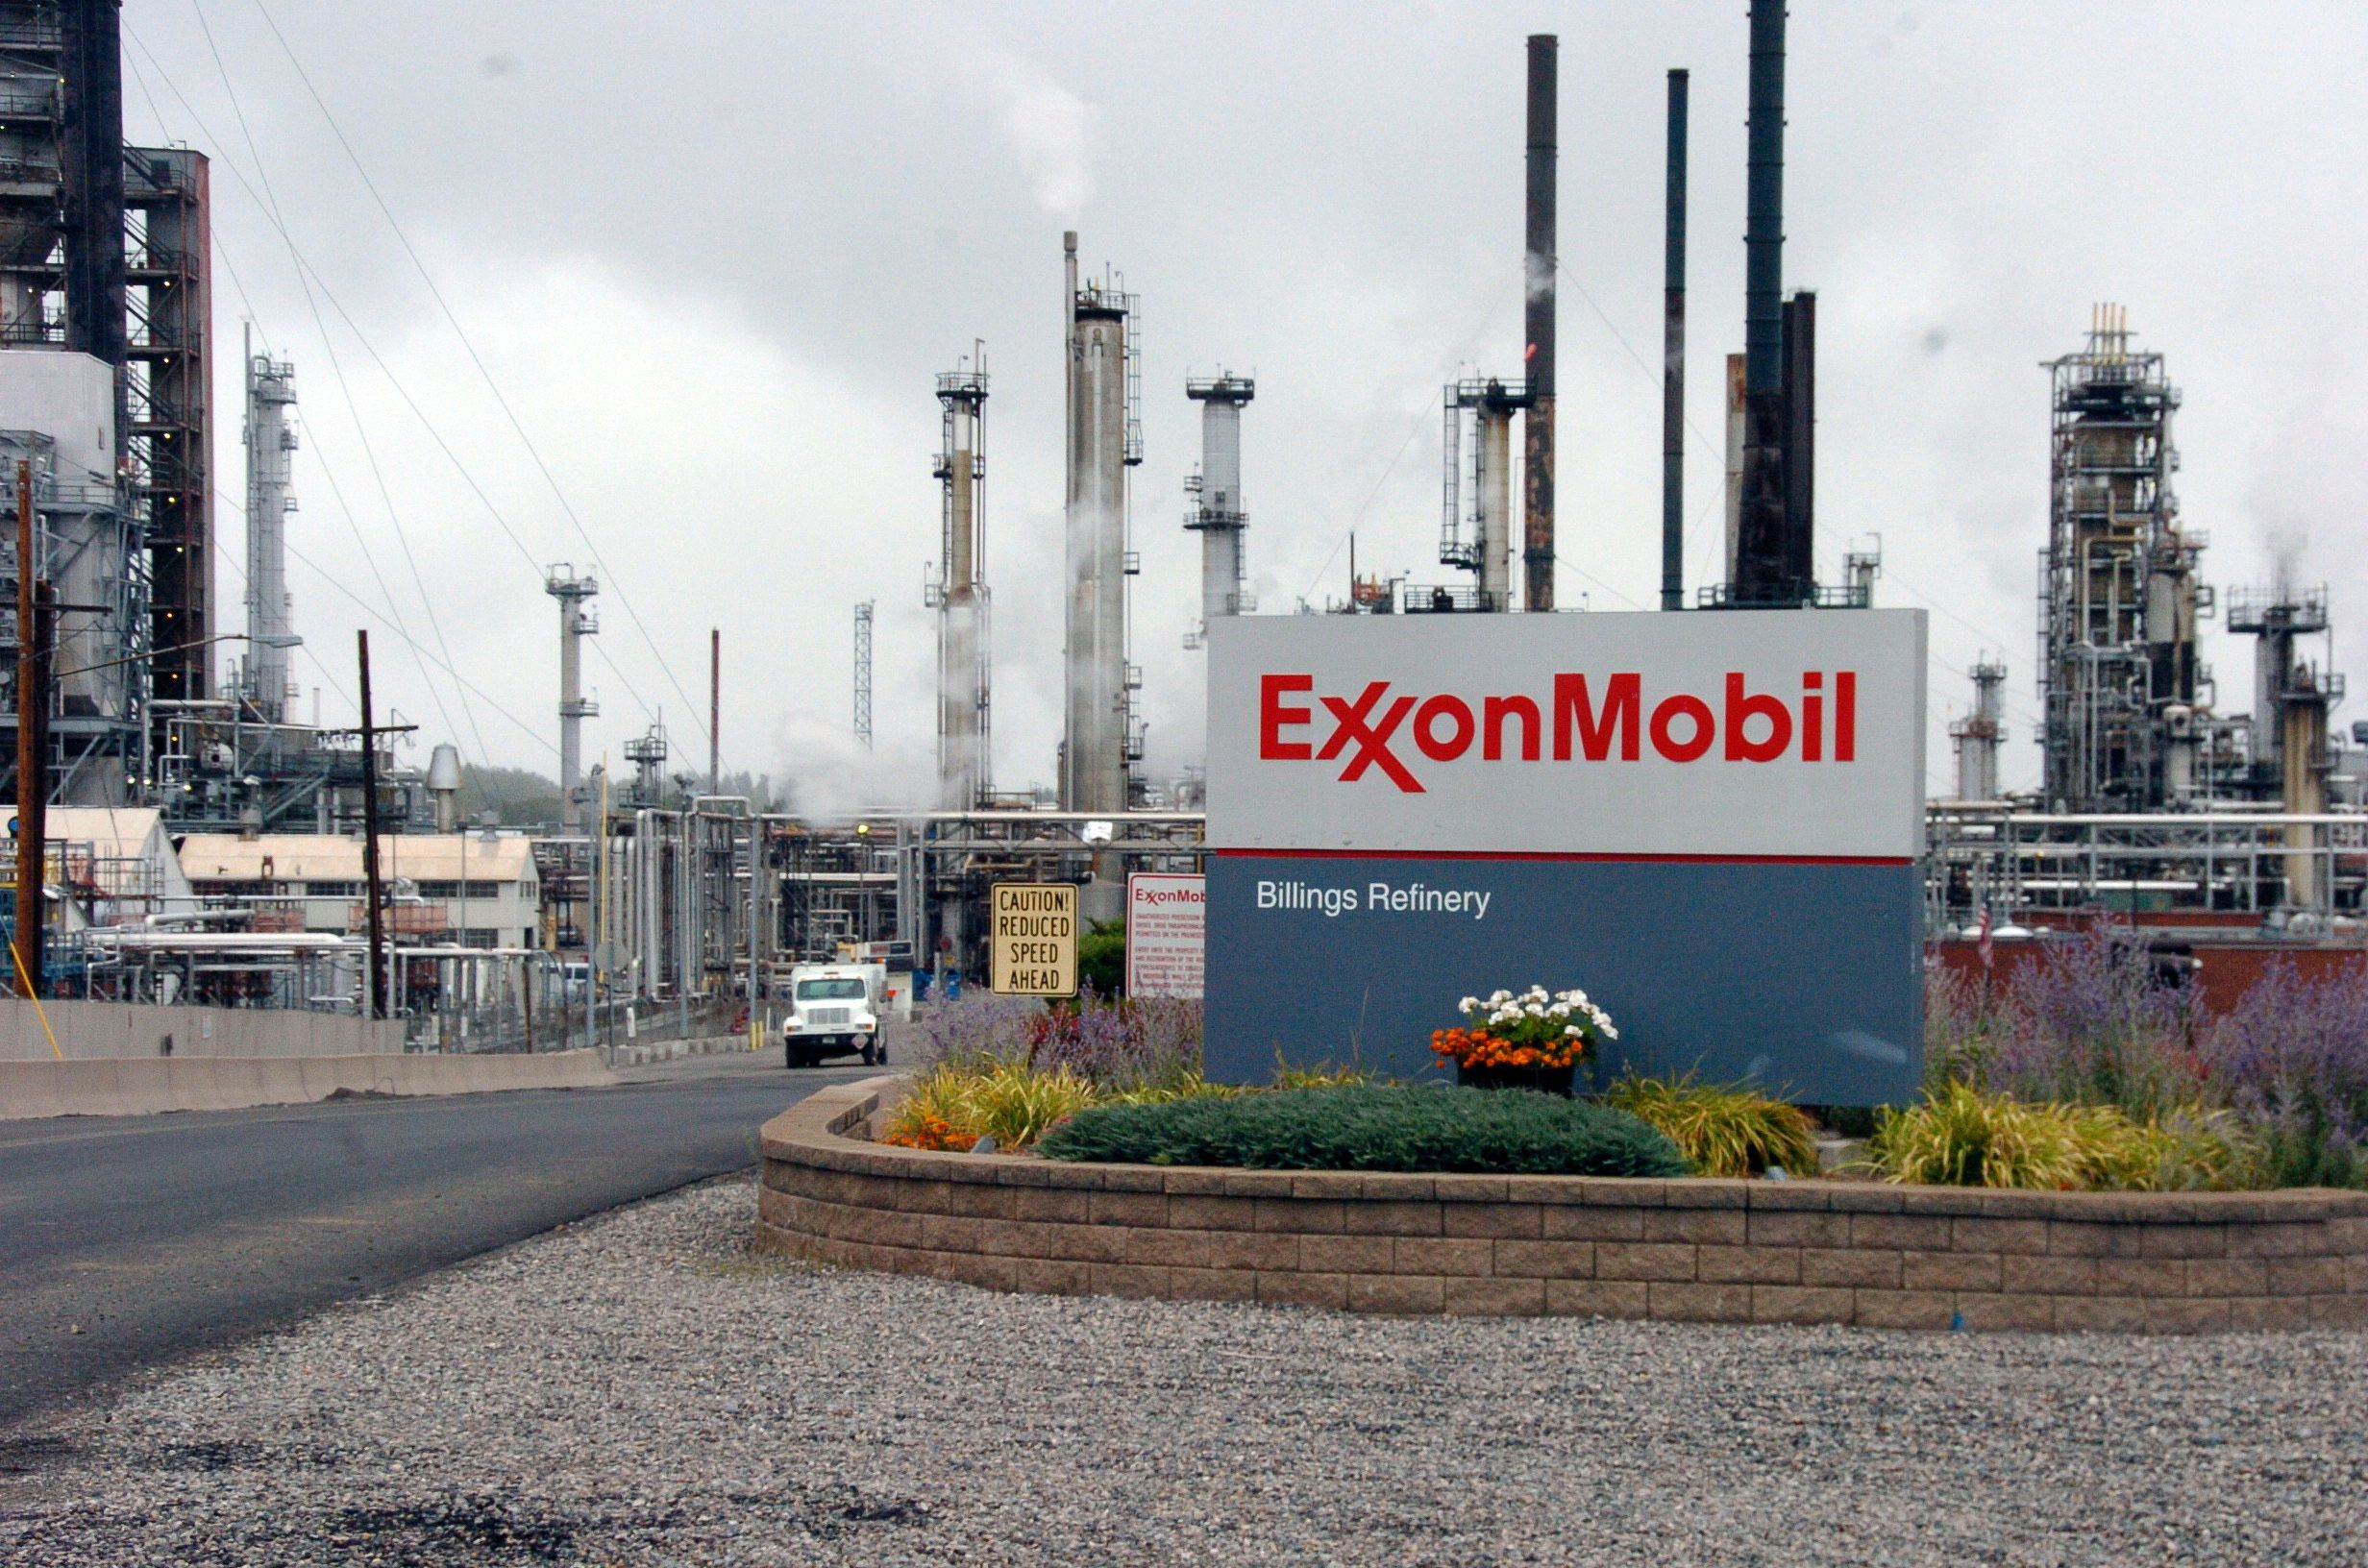 FILE - This Wednesday, Sept. 21, 2016, file photo shows Exxon Mobil's Billings Refinery in Billings, Mont. Exxon Mobil Corp. is reporting fourth-quarter profit of $1.68 billion on Tuesday, Jan. 31, 2017. (AP Photo/Matthew Brown, File)